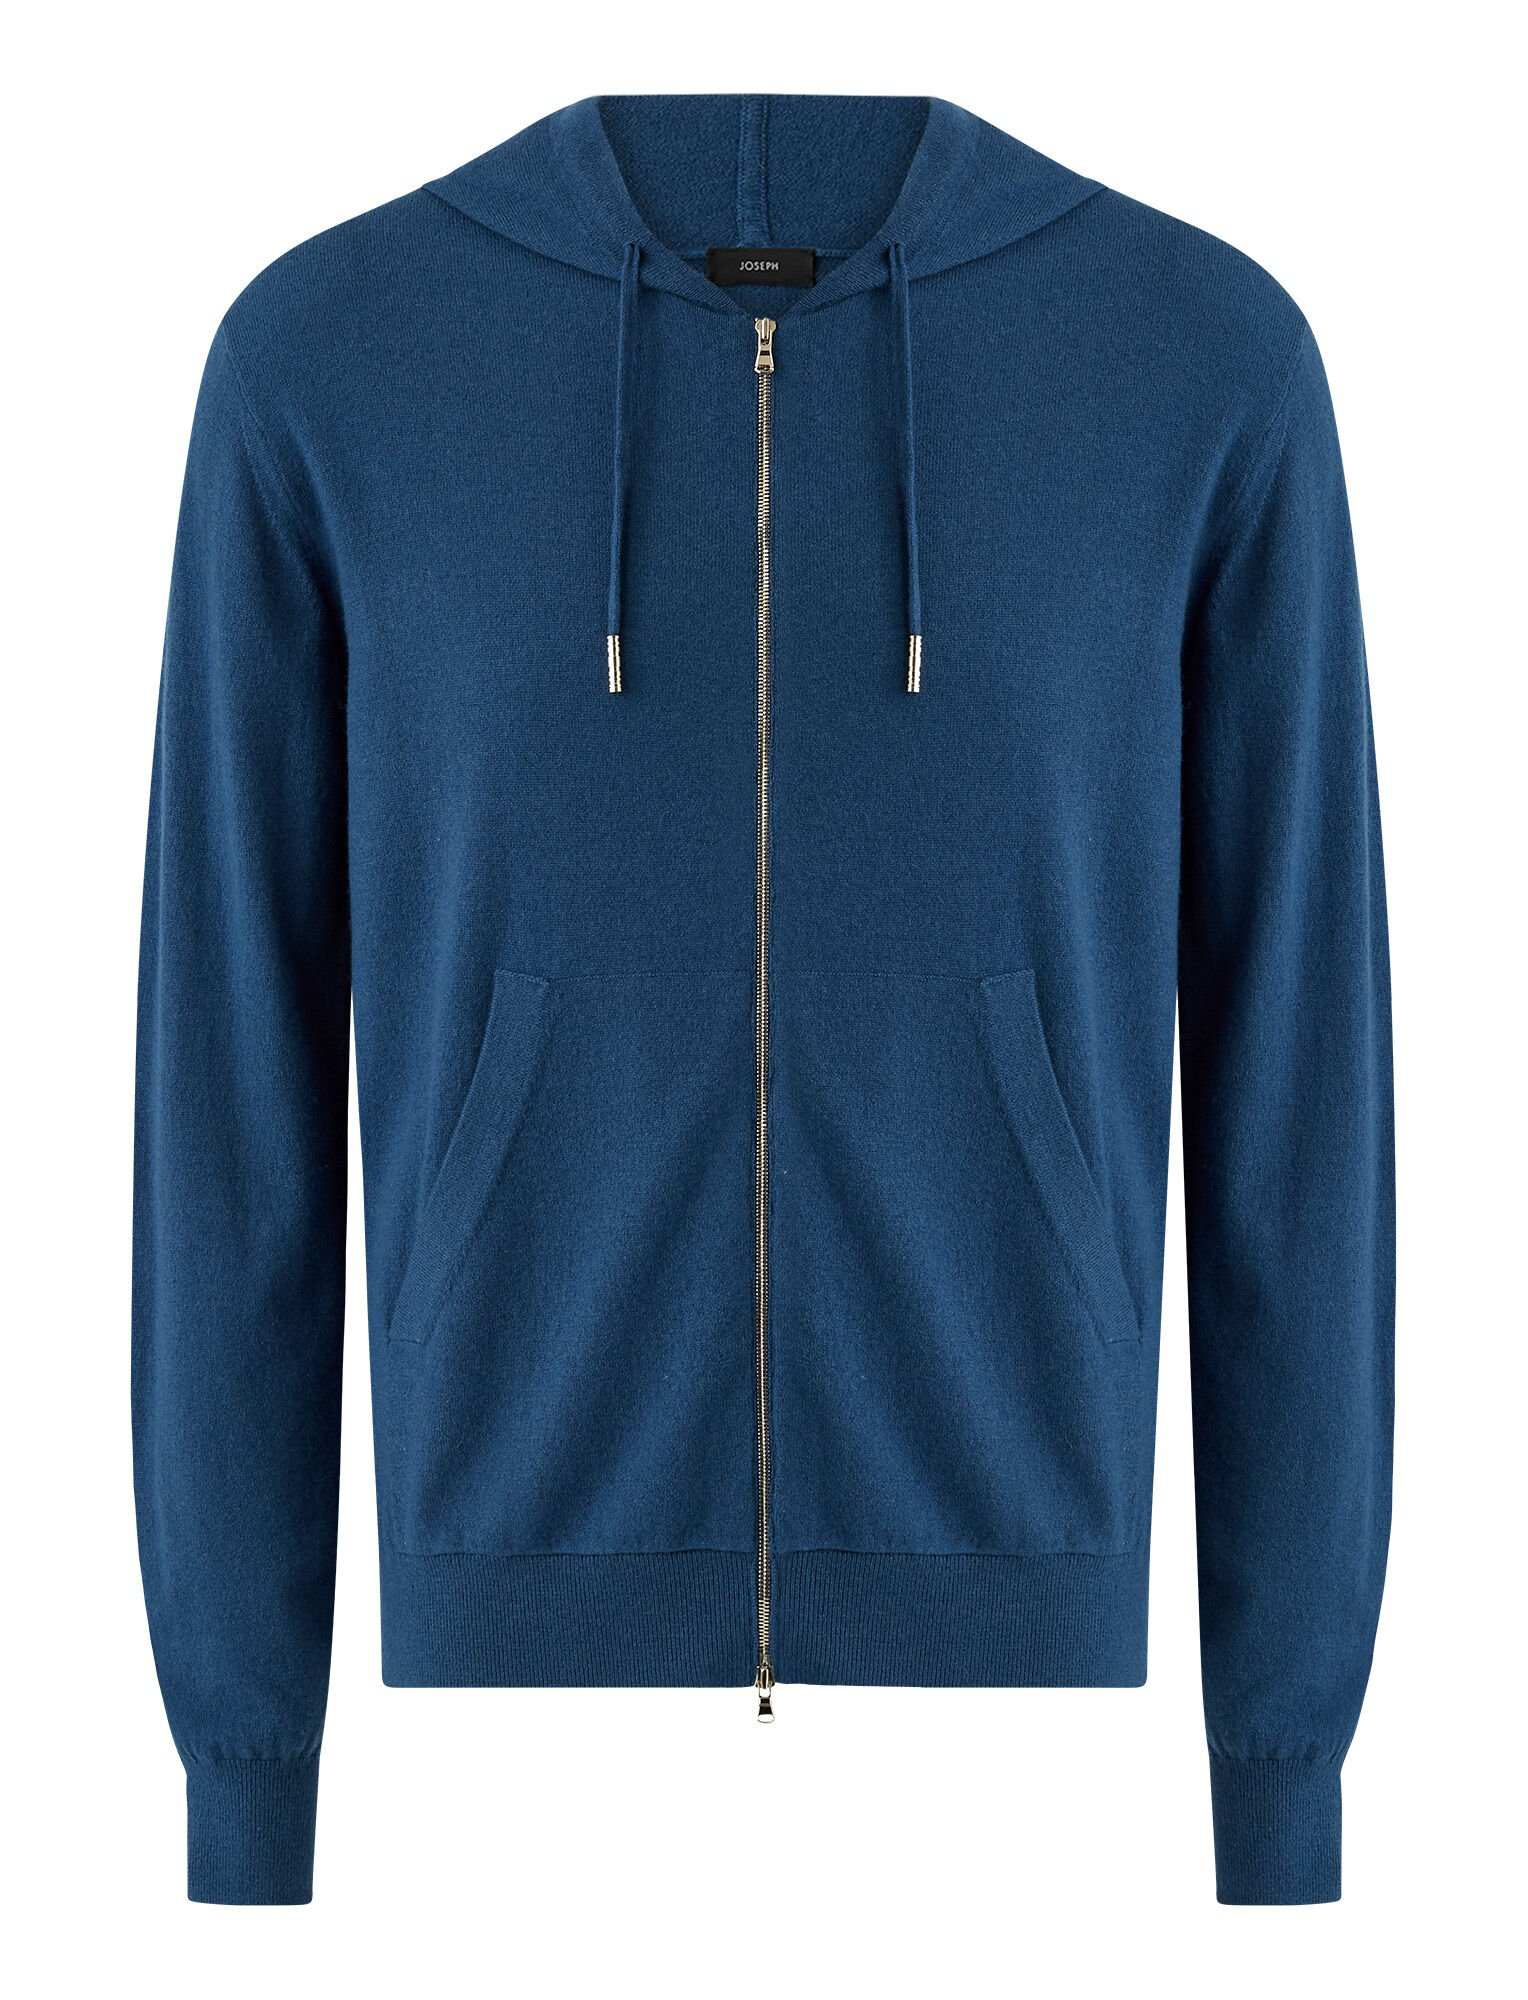 Joseph, Hoodie Cashmere Knit, in Blue